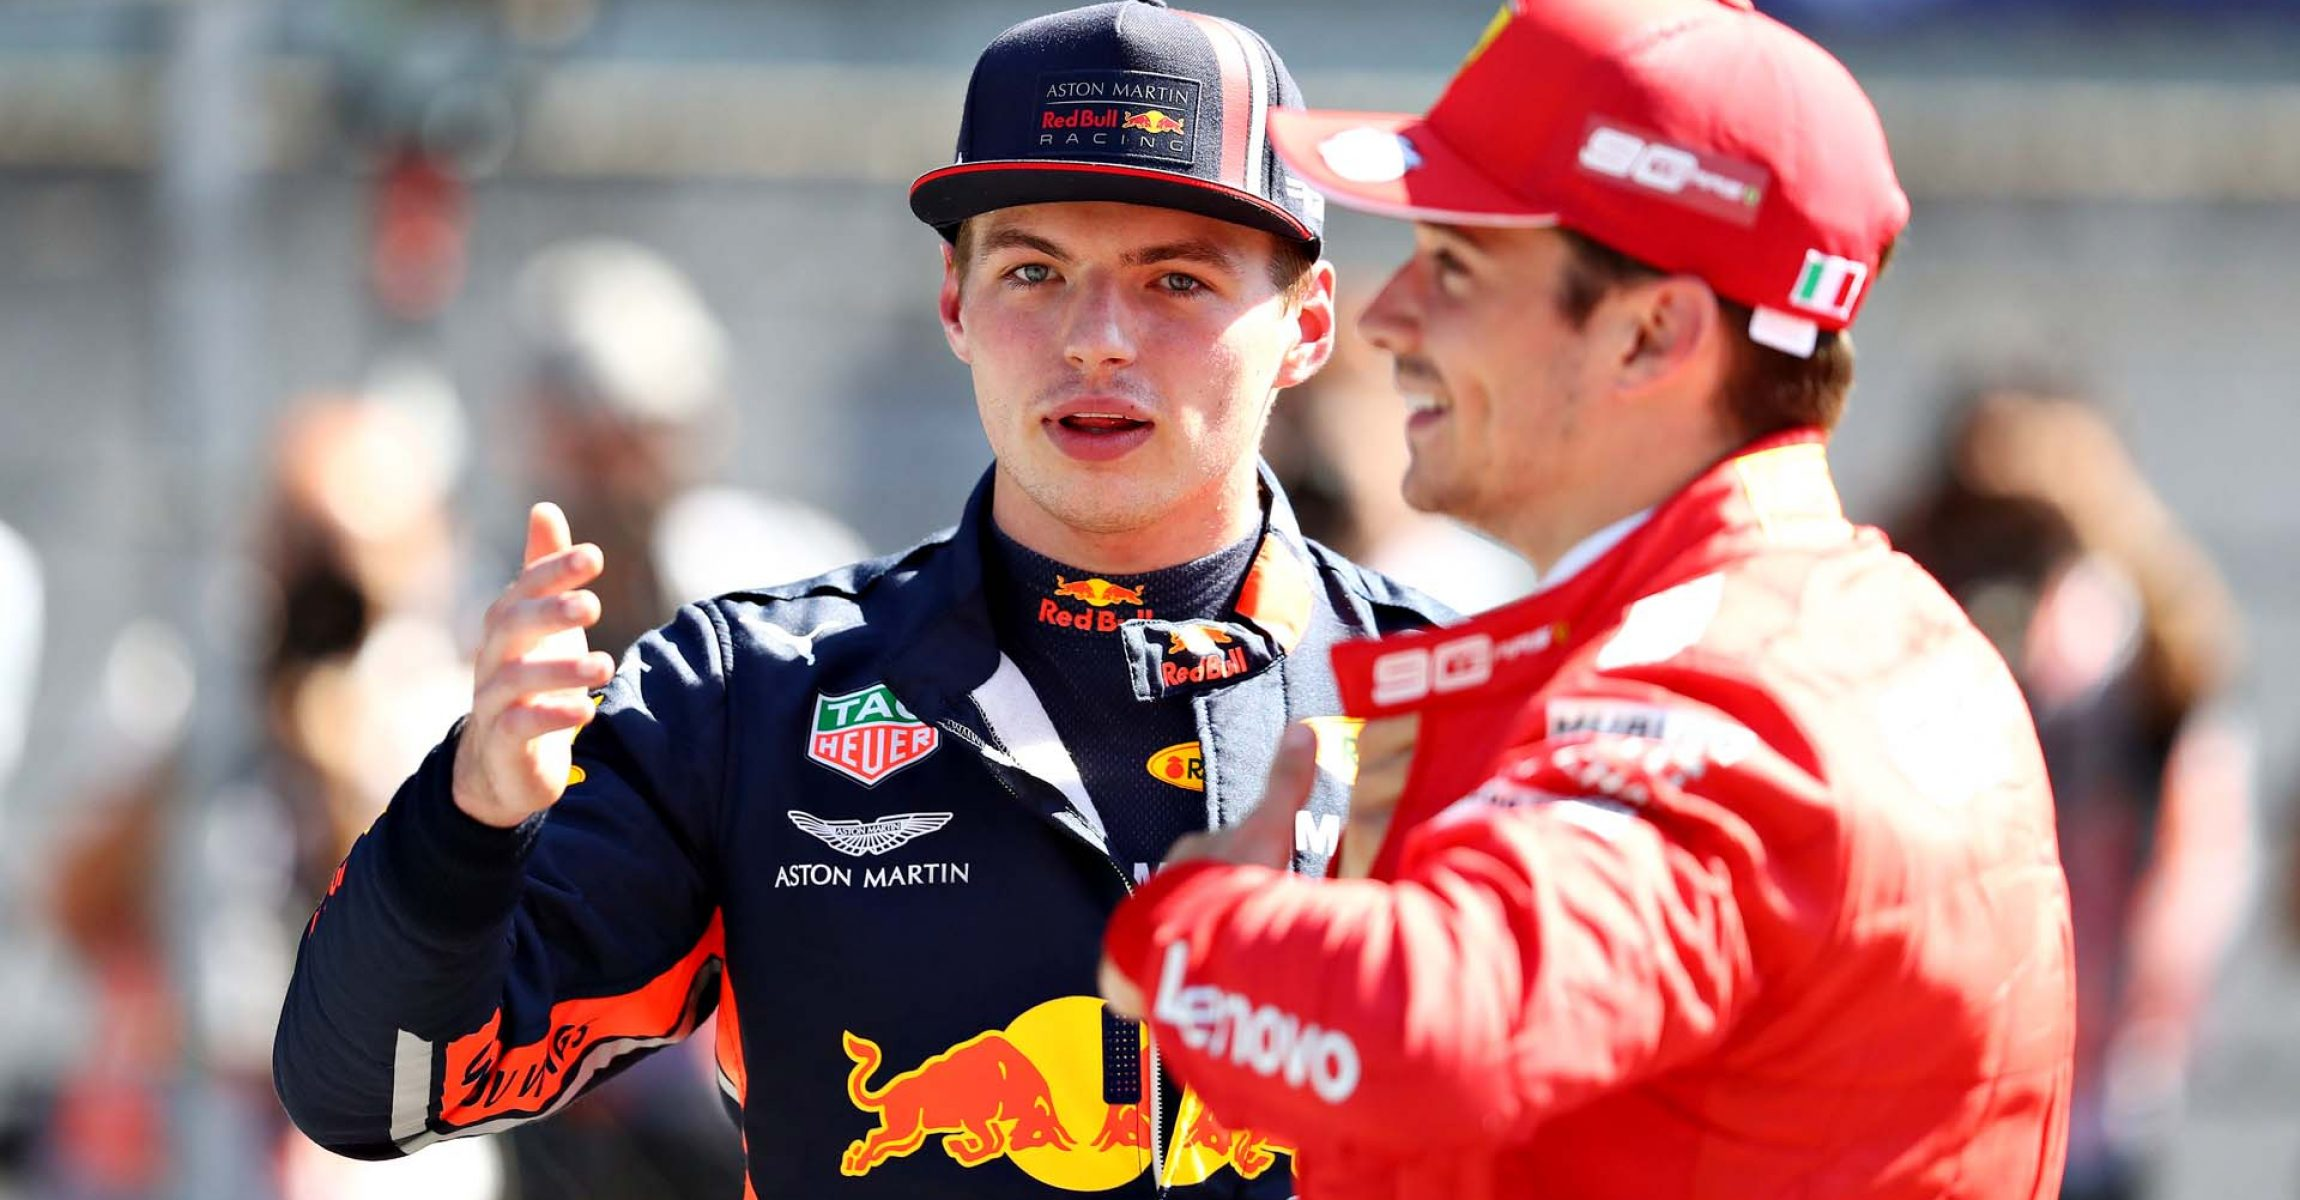 SPIELBERG, AUSTRIA - JUNE 29: Pole position qualifier Charles Leclerc of Monaco and Ferrari and third place qualifier Max Verstappen of Netherlands and Red Bull Racing talk in parc ferme during qualifying for the F1 Grand Prix of Austria at Red Bull Ring on June 29, 2019 in Spielberg, Austria. (Photo by Mark Thompson/Getty Images) // Getty Images / Red Bull Content Pool // AP-1ZSYC1BQN1W11 // Usage for editorial use only // Please go to www.redbullcontentpool.com for further information. //